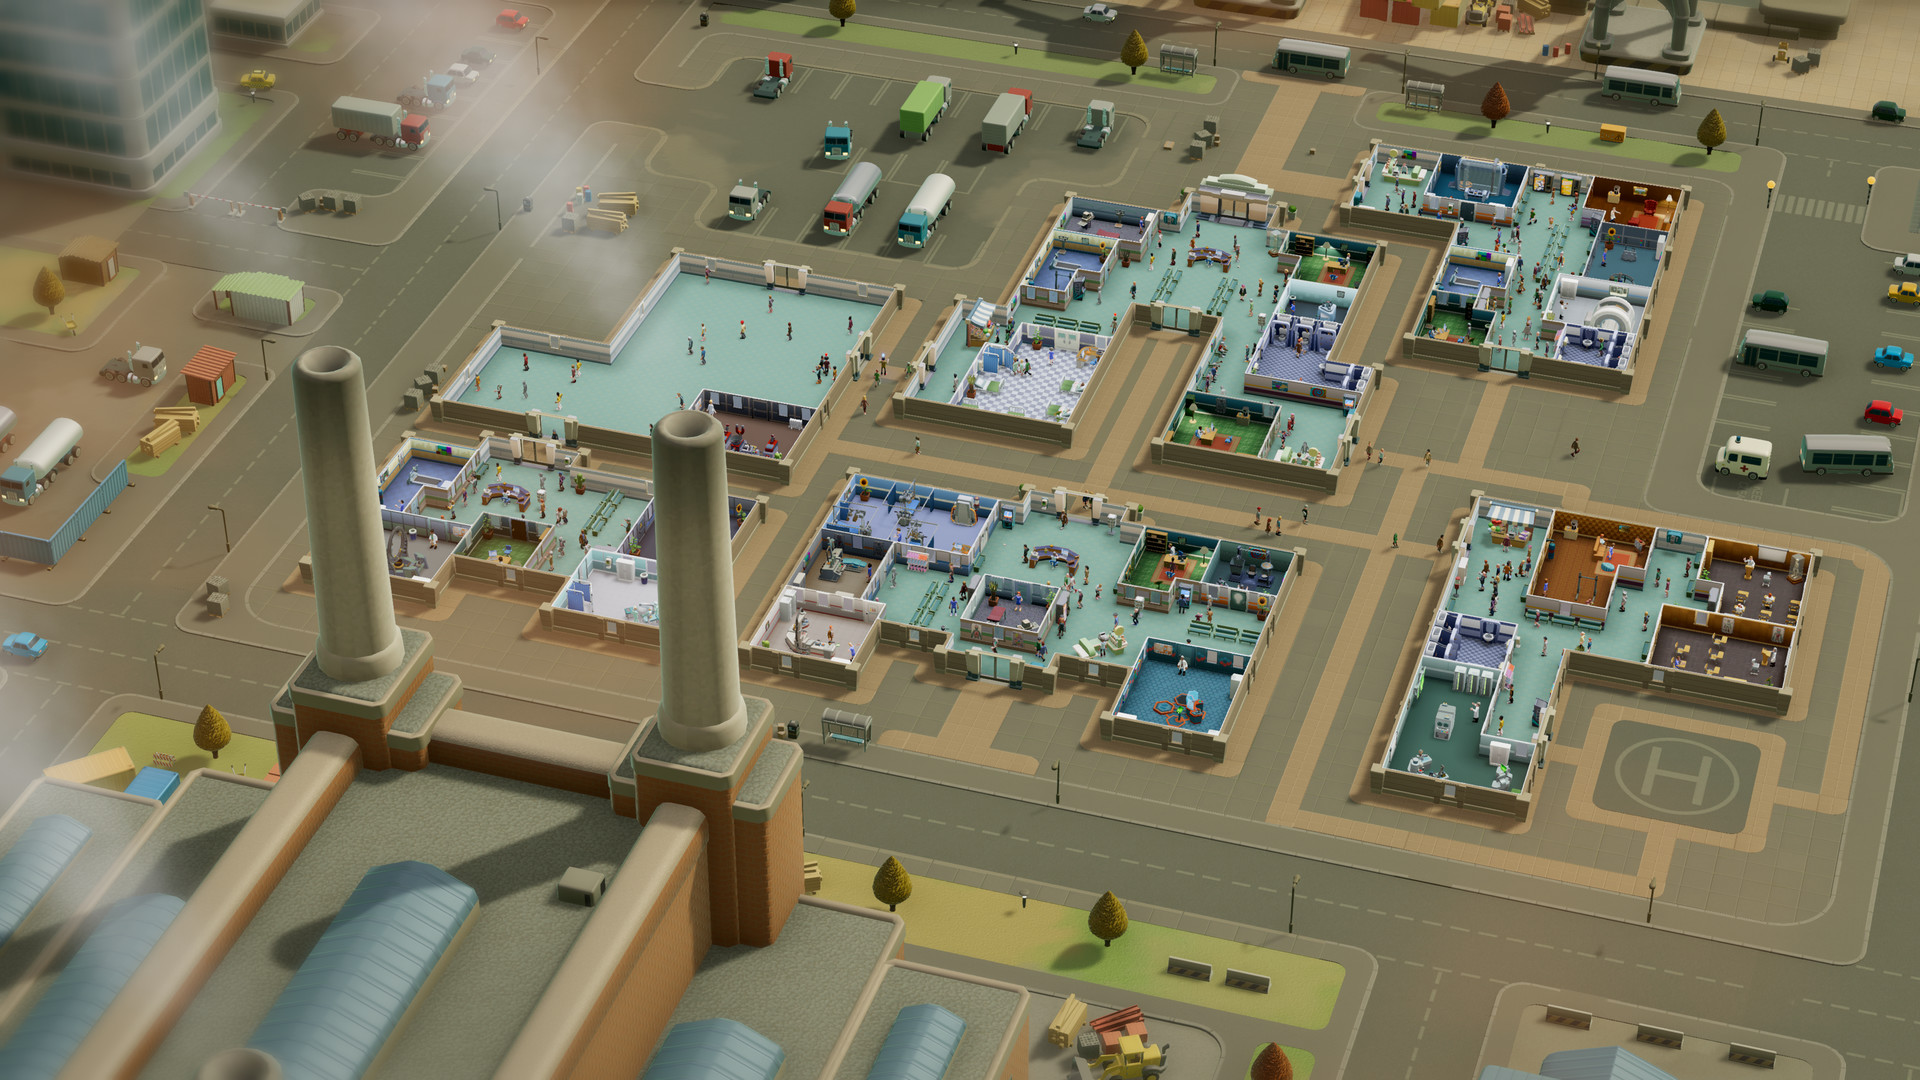 twopointhospital-3